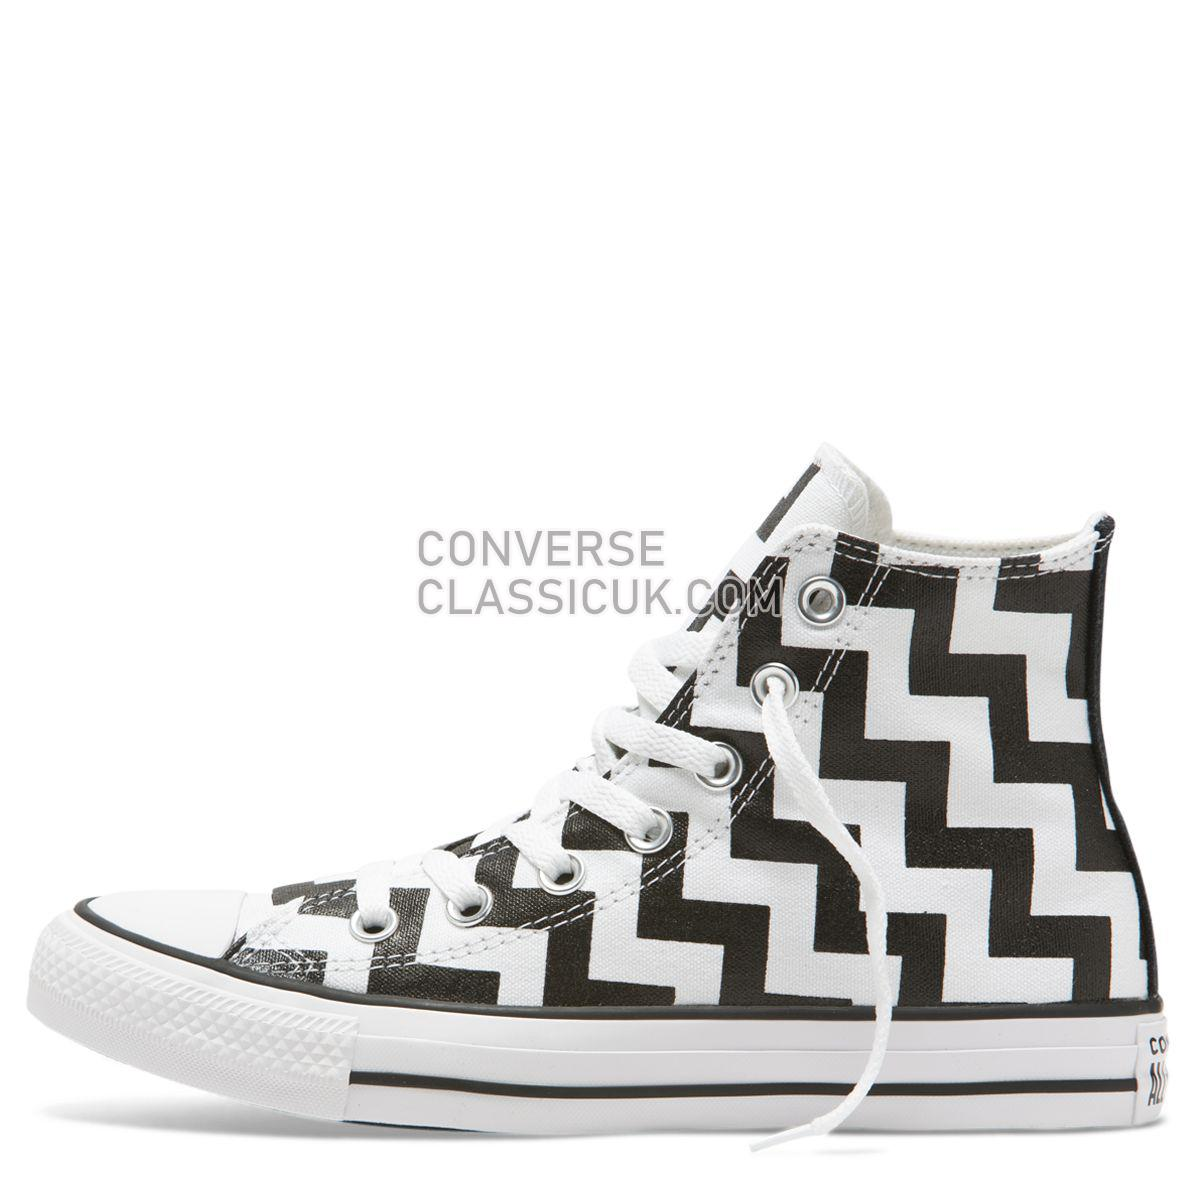 Converse Chuck Taylor All Star Glam Dunk High Top White Womens 565213 White/Black/White Shoes